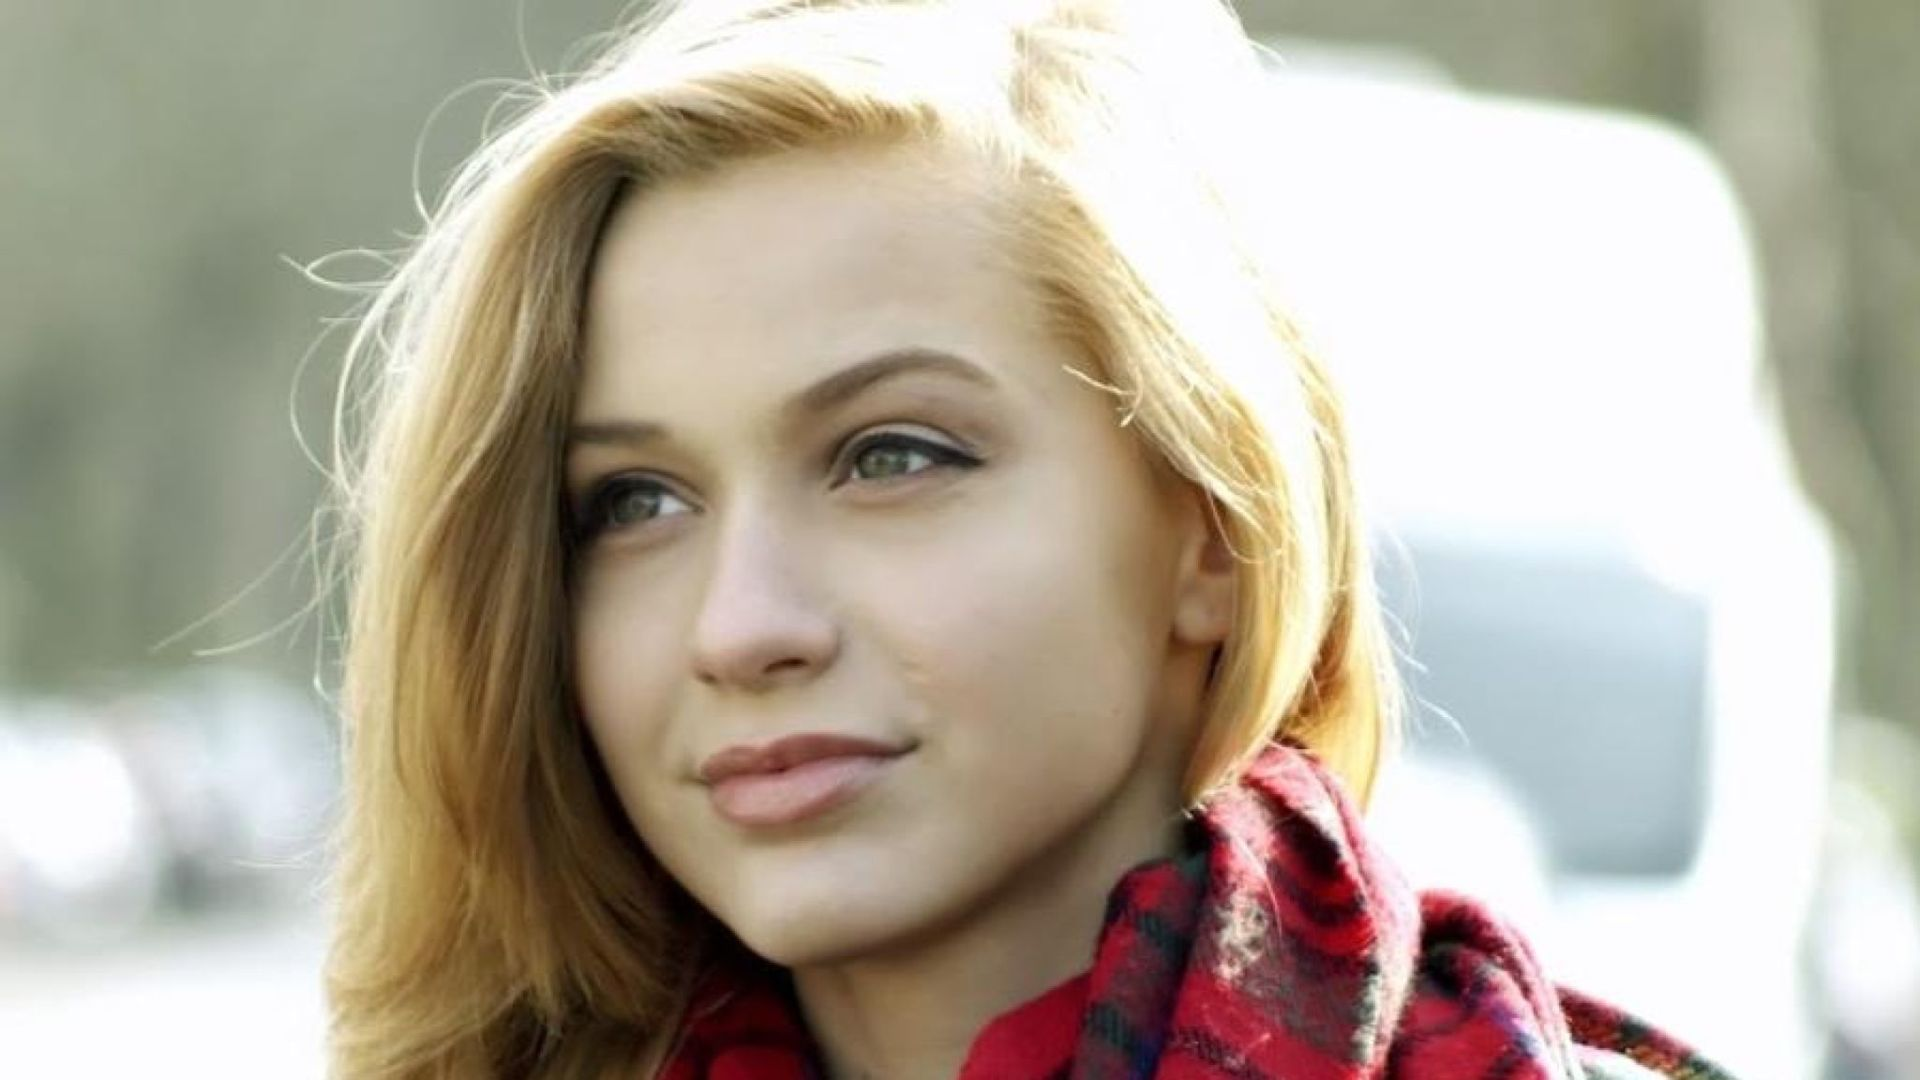 Dagmara Przybysz was found hanged at school after being 'bullied for being Polish'